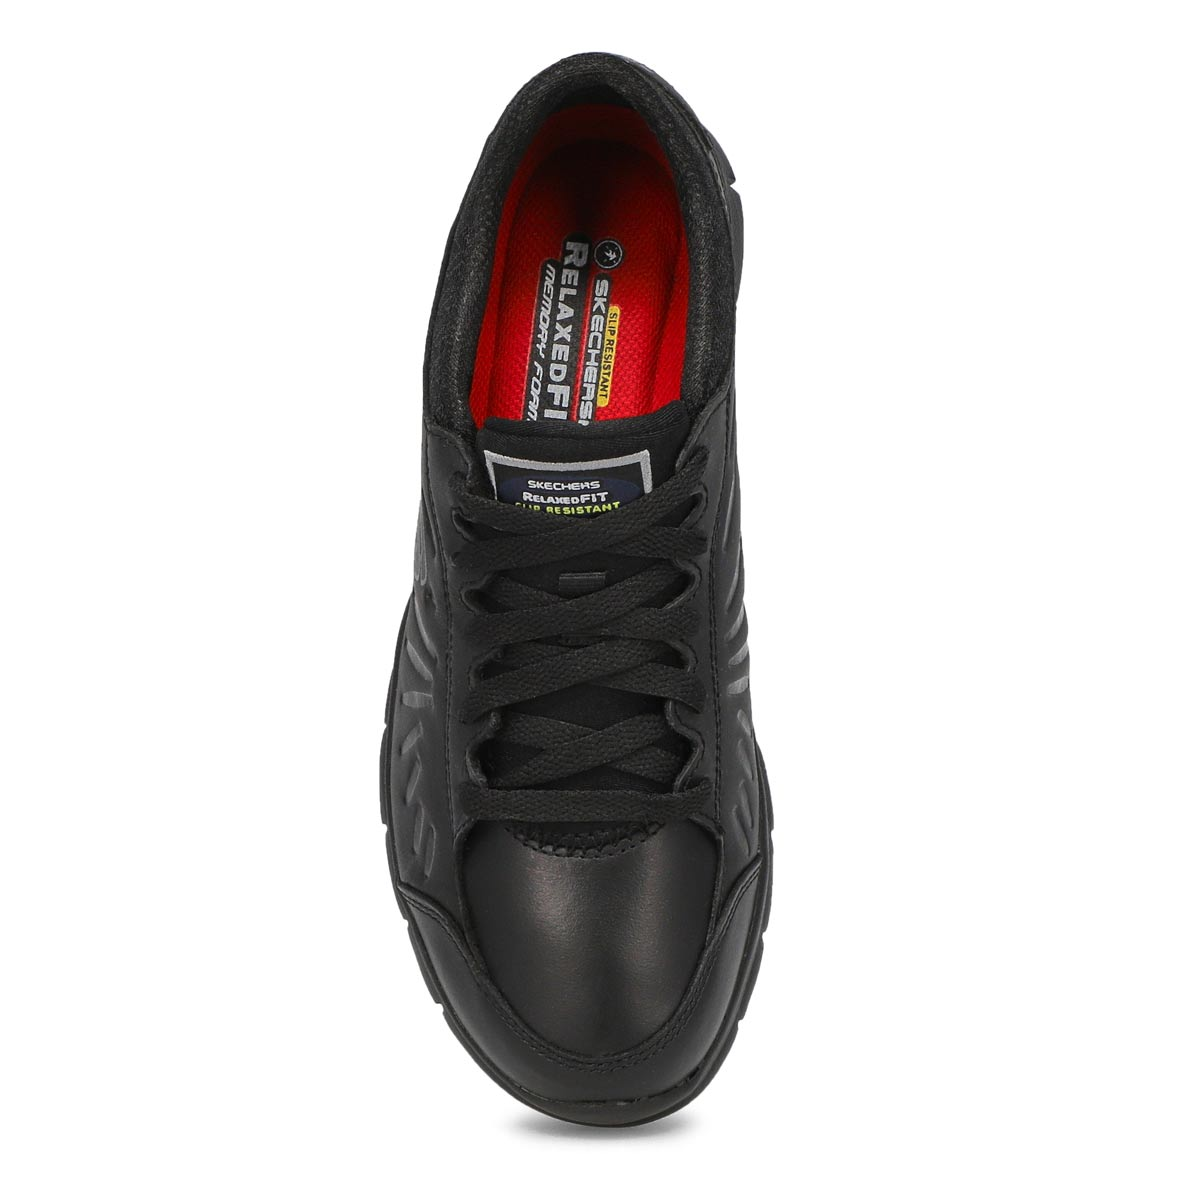 Lds Eldred black slip-resis lace-up work